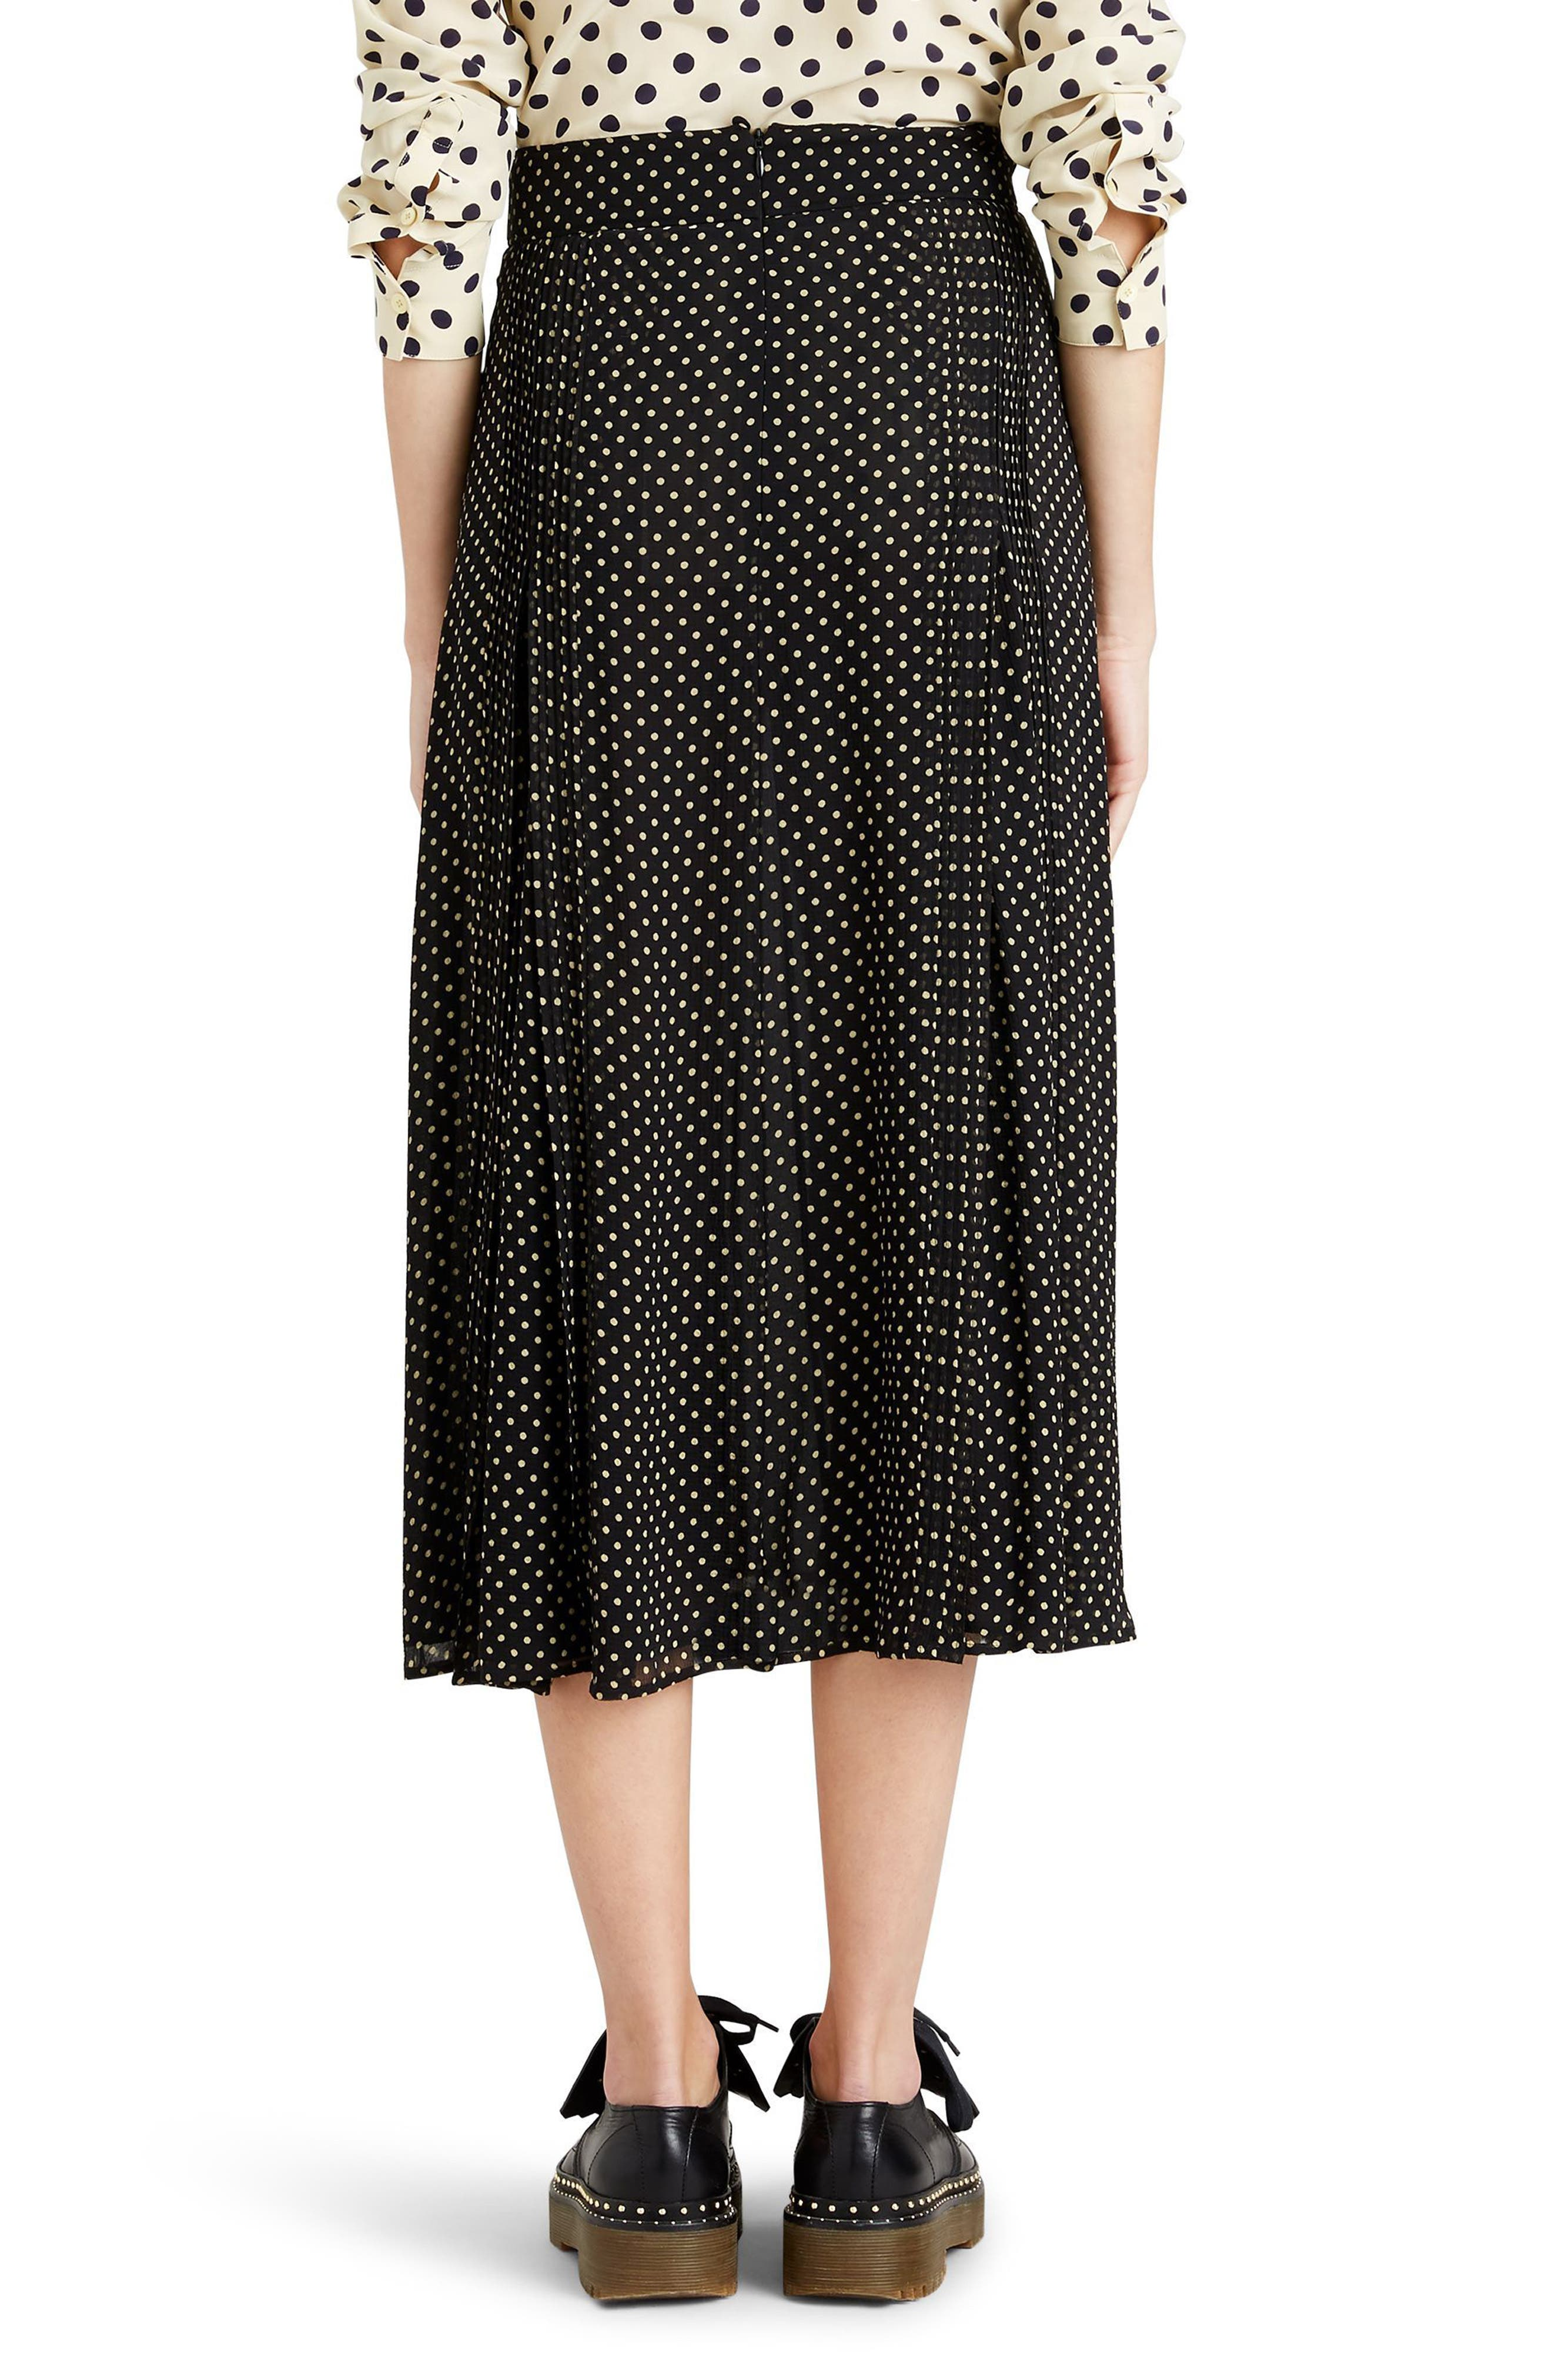 Fine Pintuck Dot Print Silk Skirt,                             Alternate thumbnail 2, color,                             Black